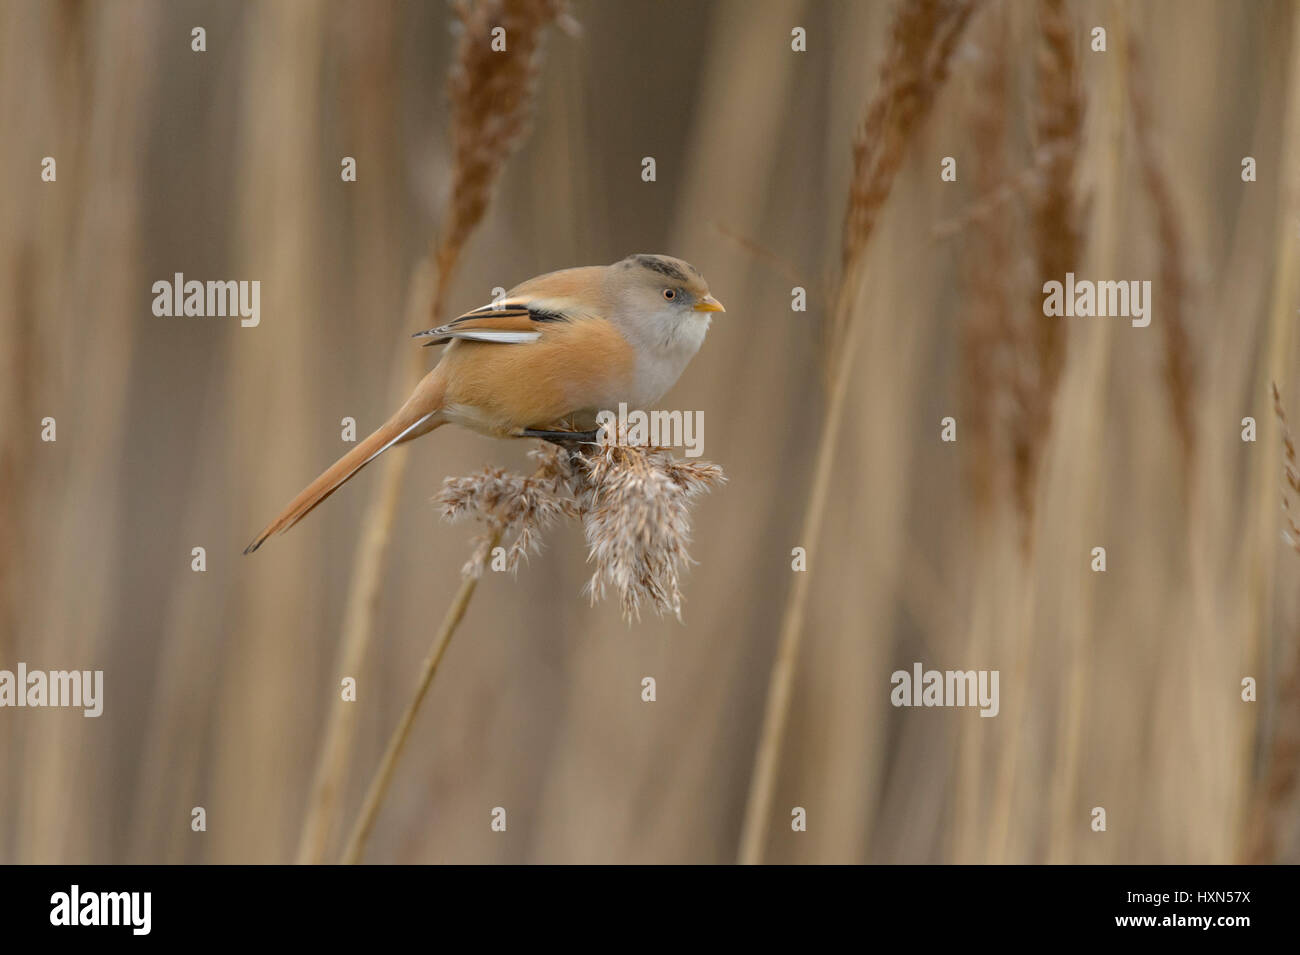 Bearded tit or bearded reedling (Panurus biarmicus) adult female feeding on seedhead of common reed. Norfolk, England. Stock Photo